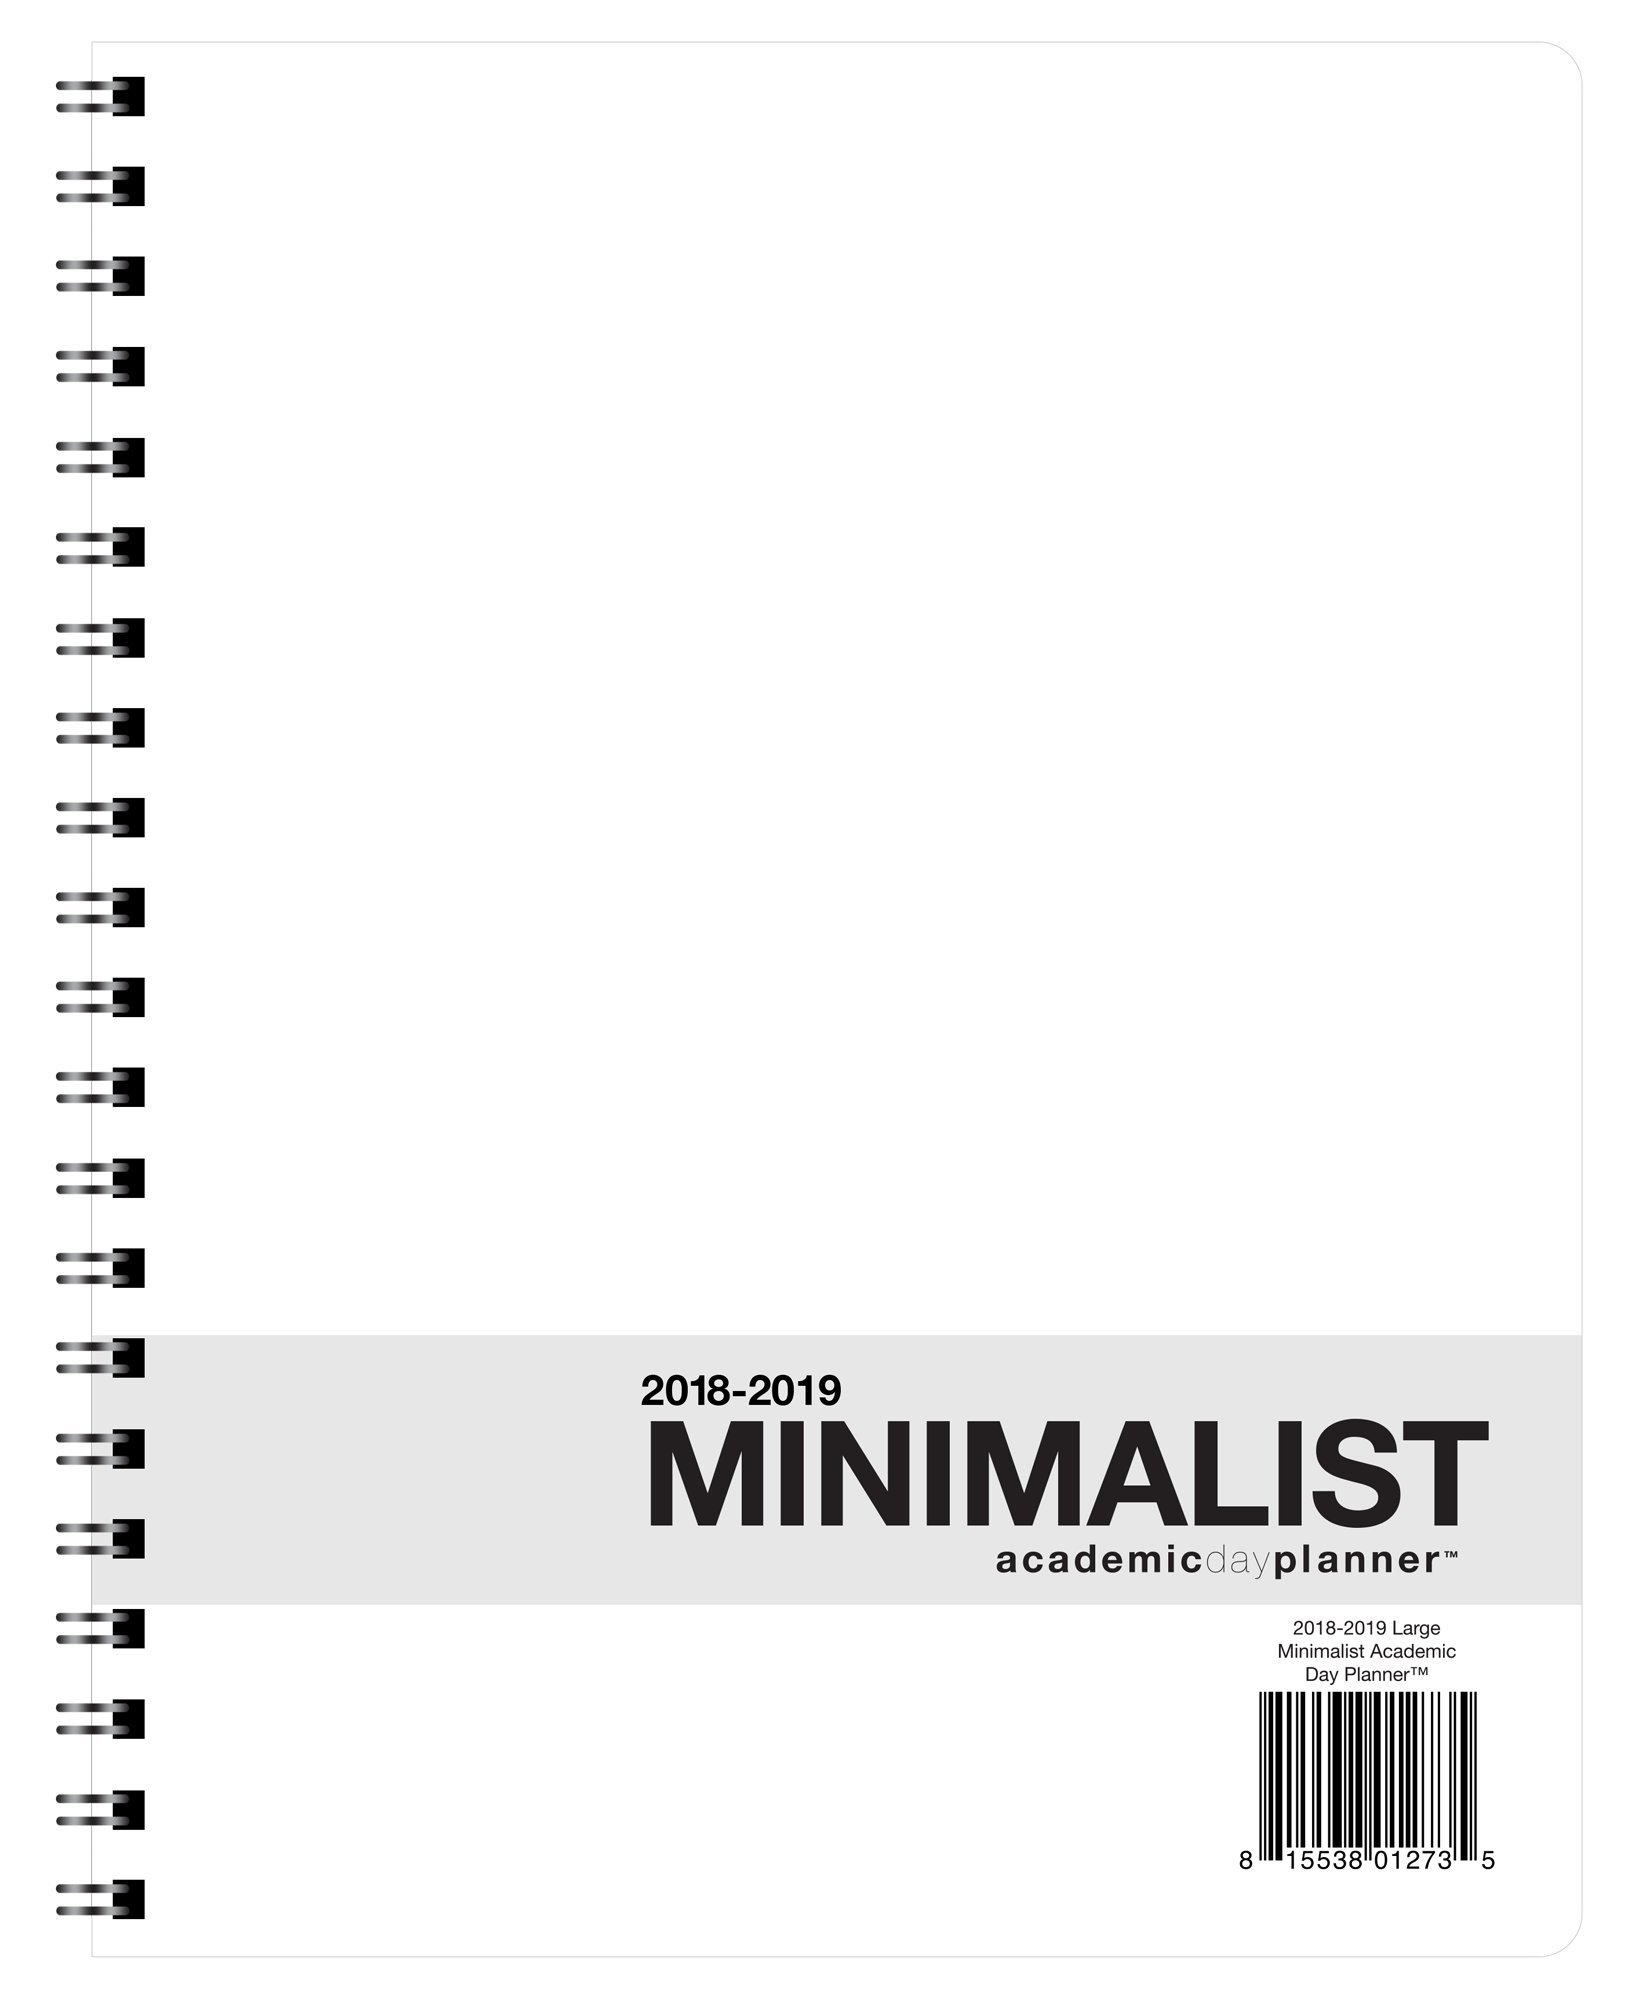 Action Publishing · Minimalist Student Planner · Dated Weekly and Monthly Agenda for Academic Year 2018-2019 · Large (8.5 x 11 inches)